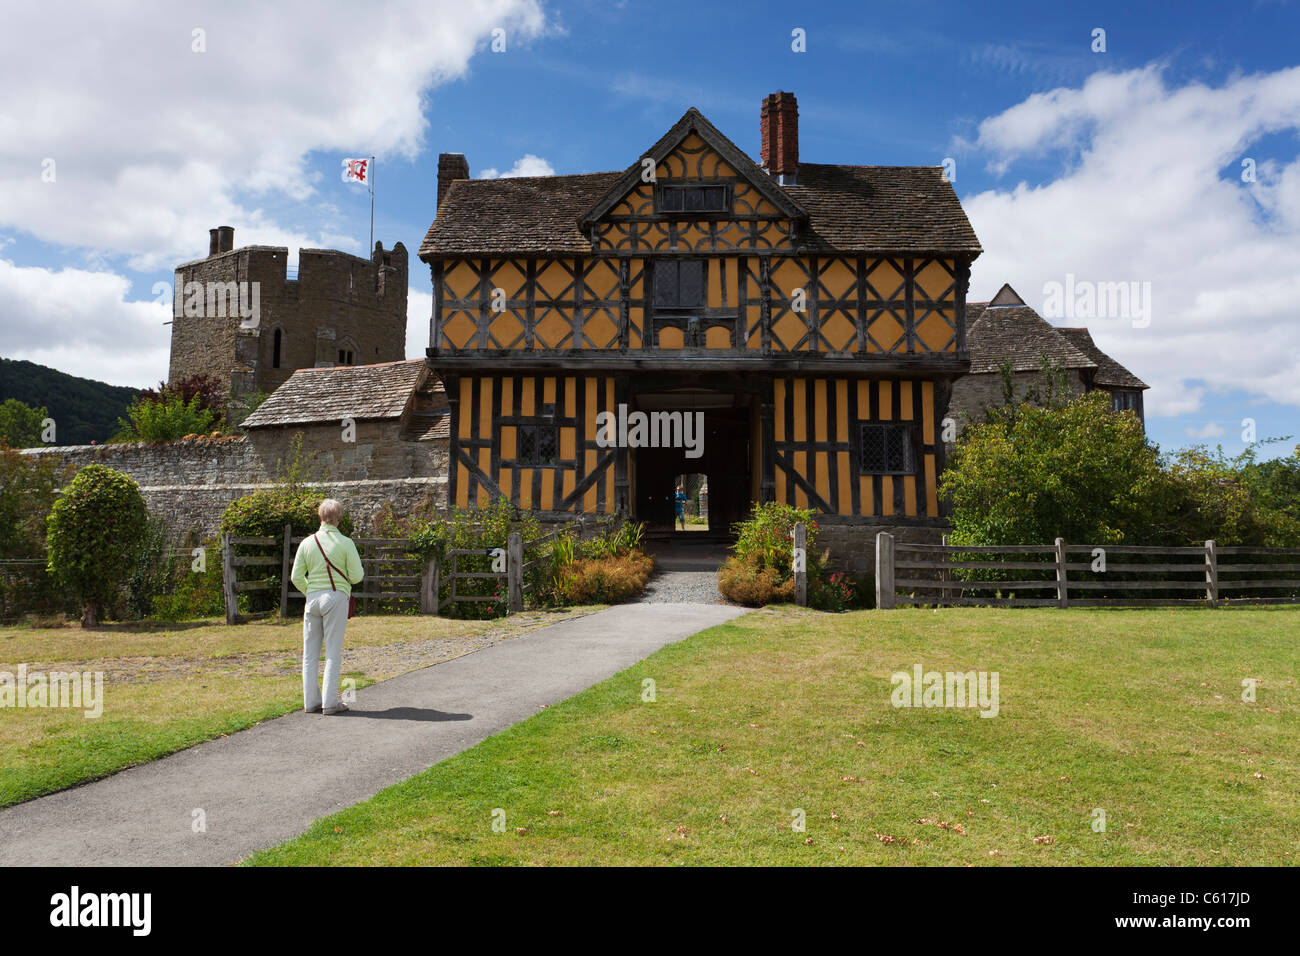 The beautiful Stokesay castle in Shropshire. One of the finest and best preserved fortified medieval manor houses Stock Photo